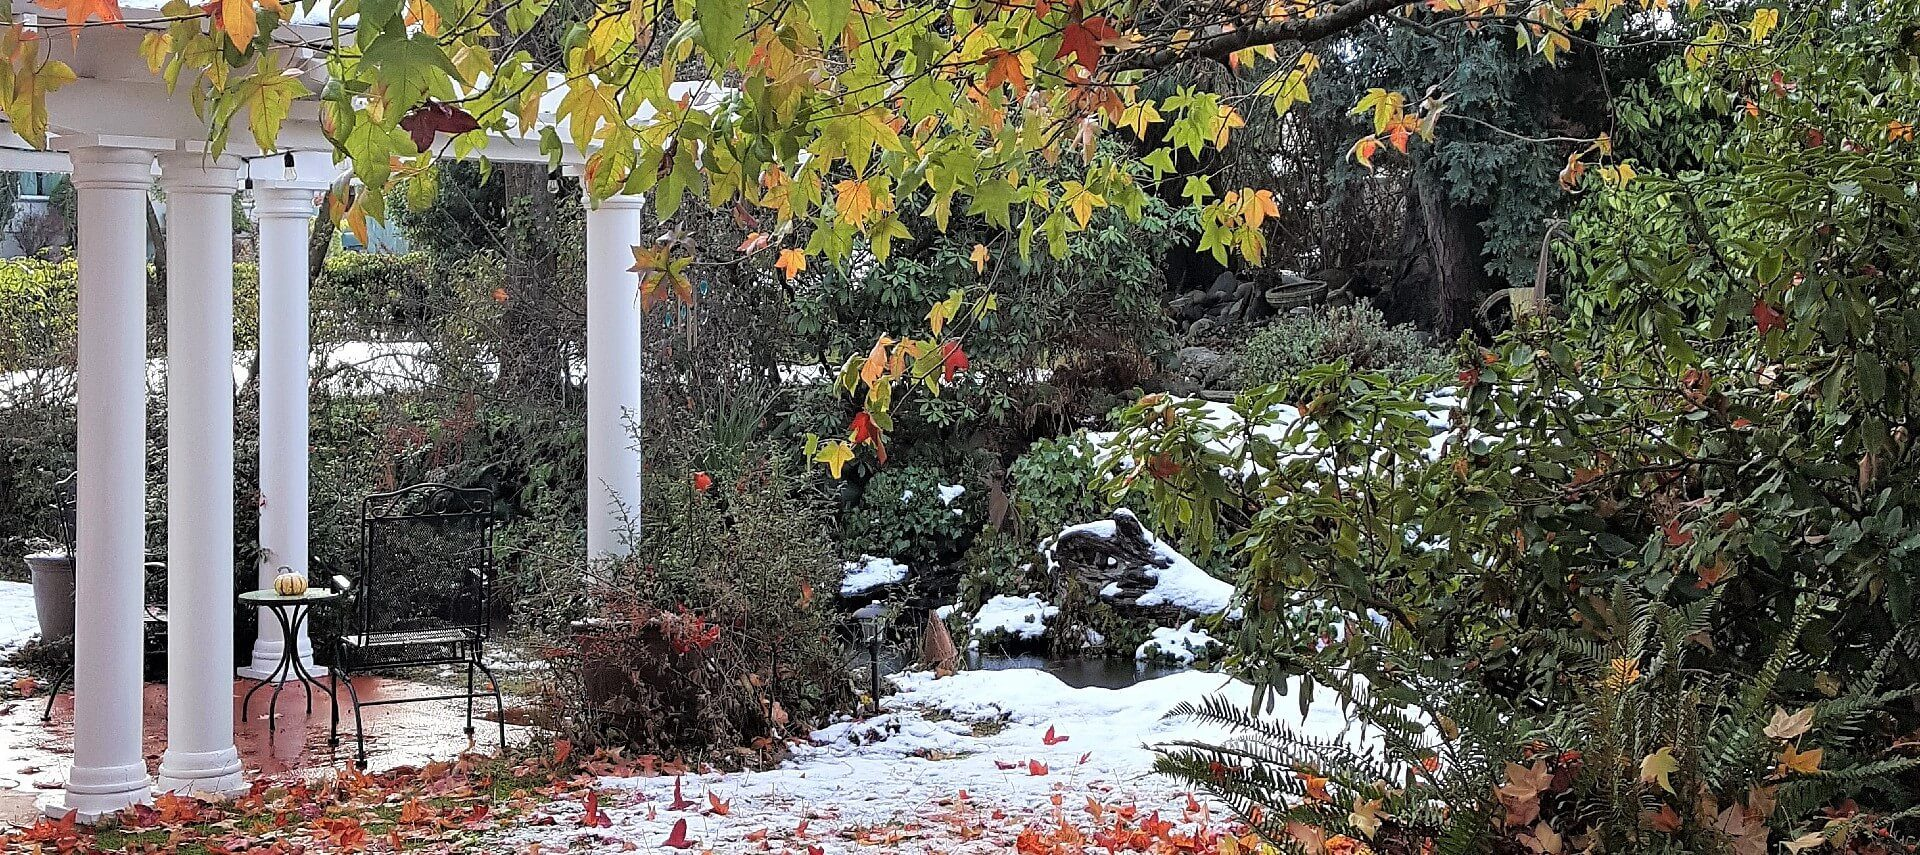 Outside garden with fall leaves and a bit of snow with patio and white pergola with columns